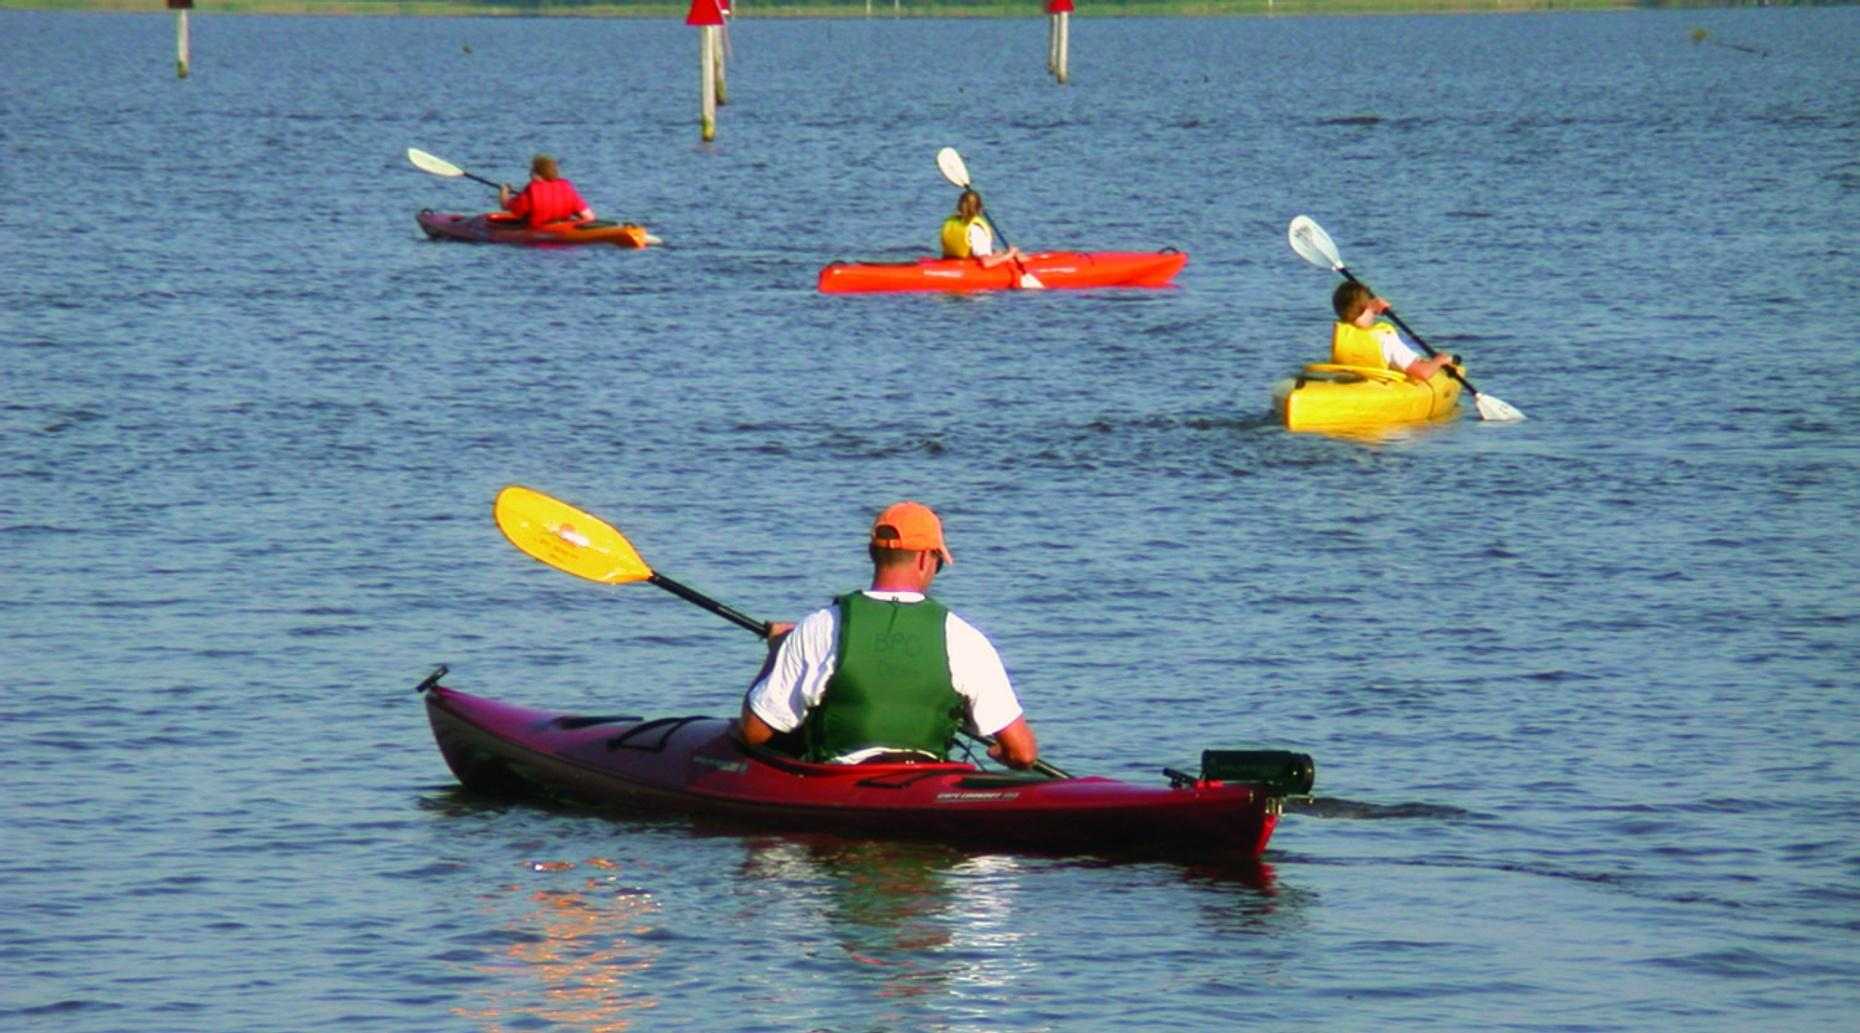 Introductory Kayaking Safety Course in Cornucopia